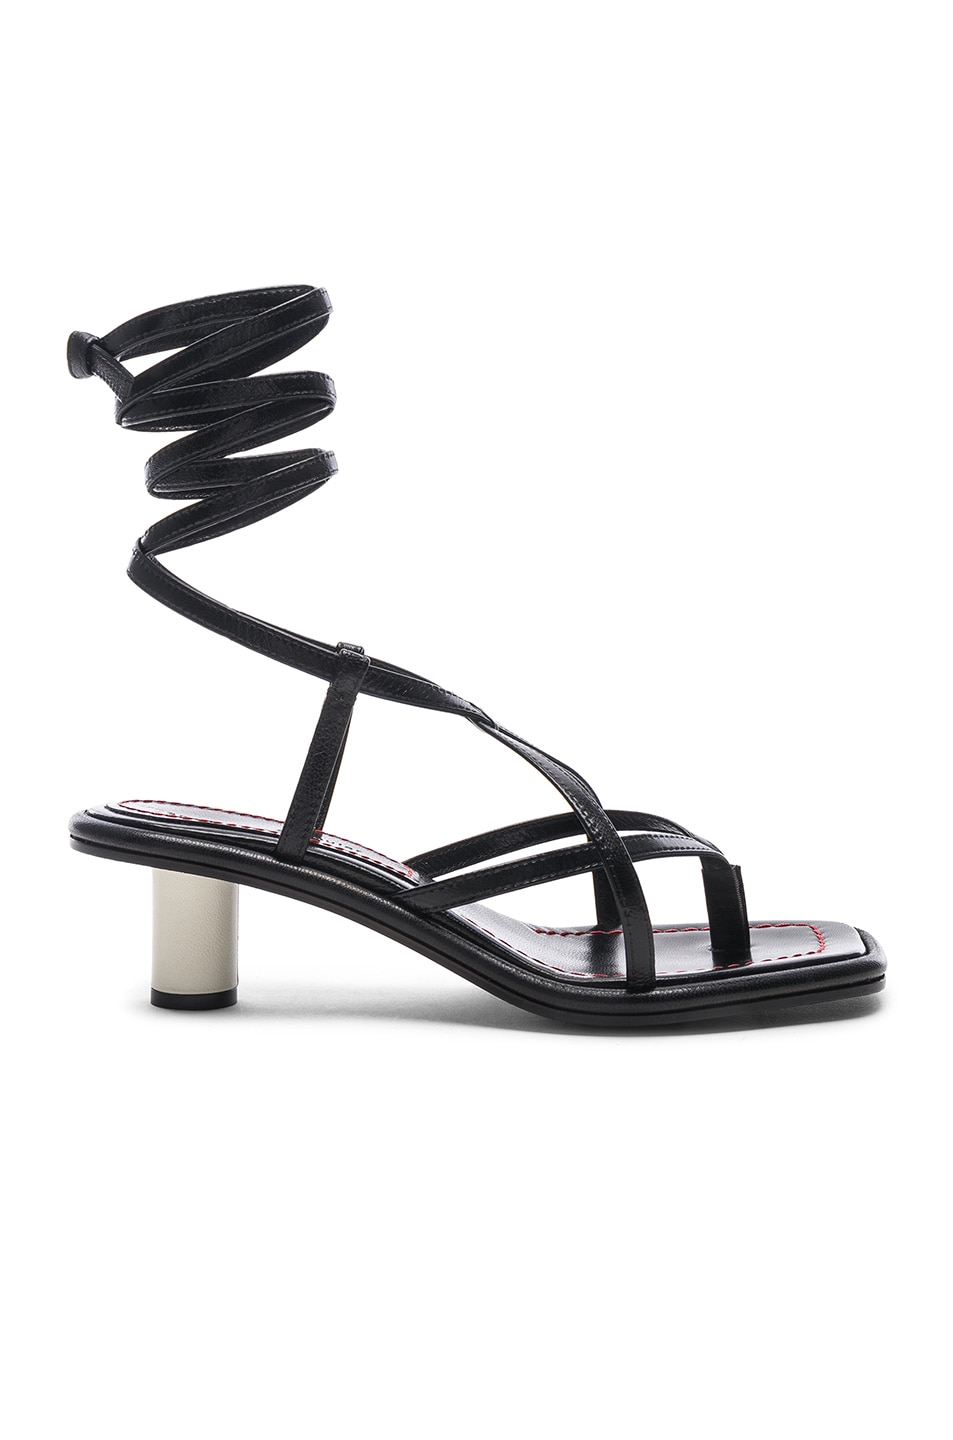 Image 1 of Proenza Schouler Gladiator Sandals in Nero